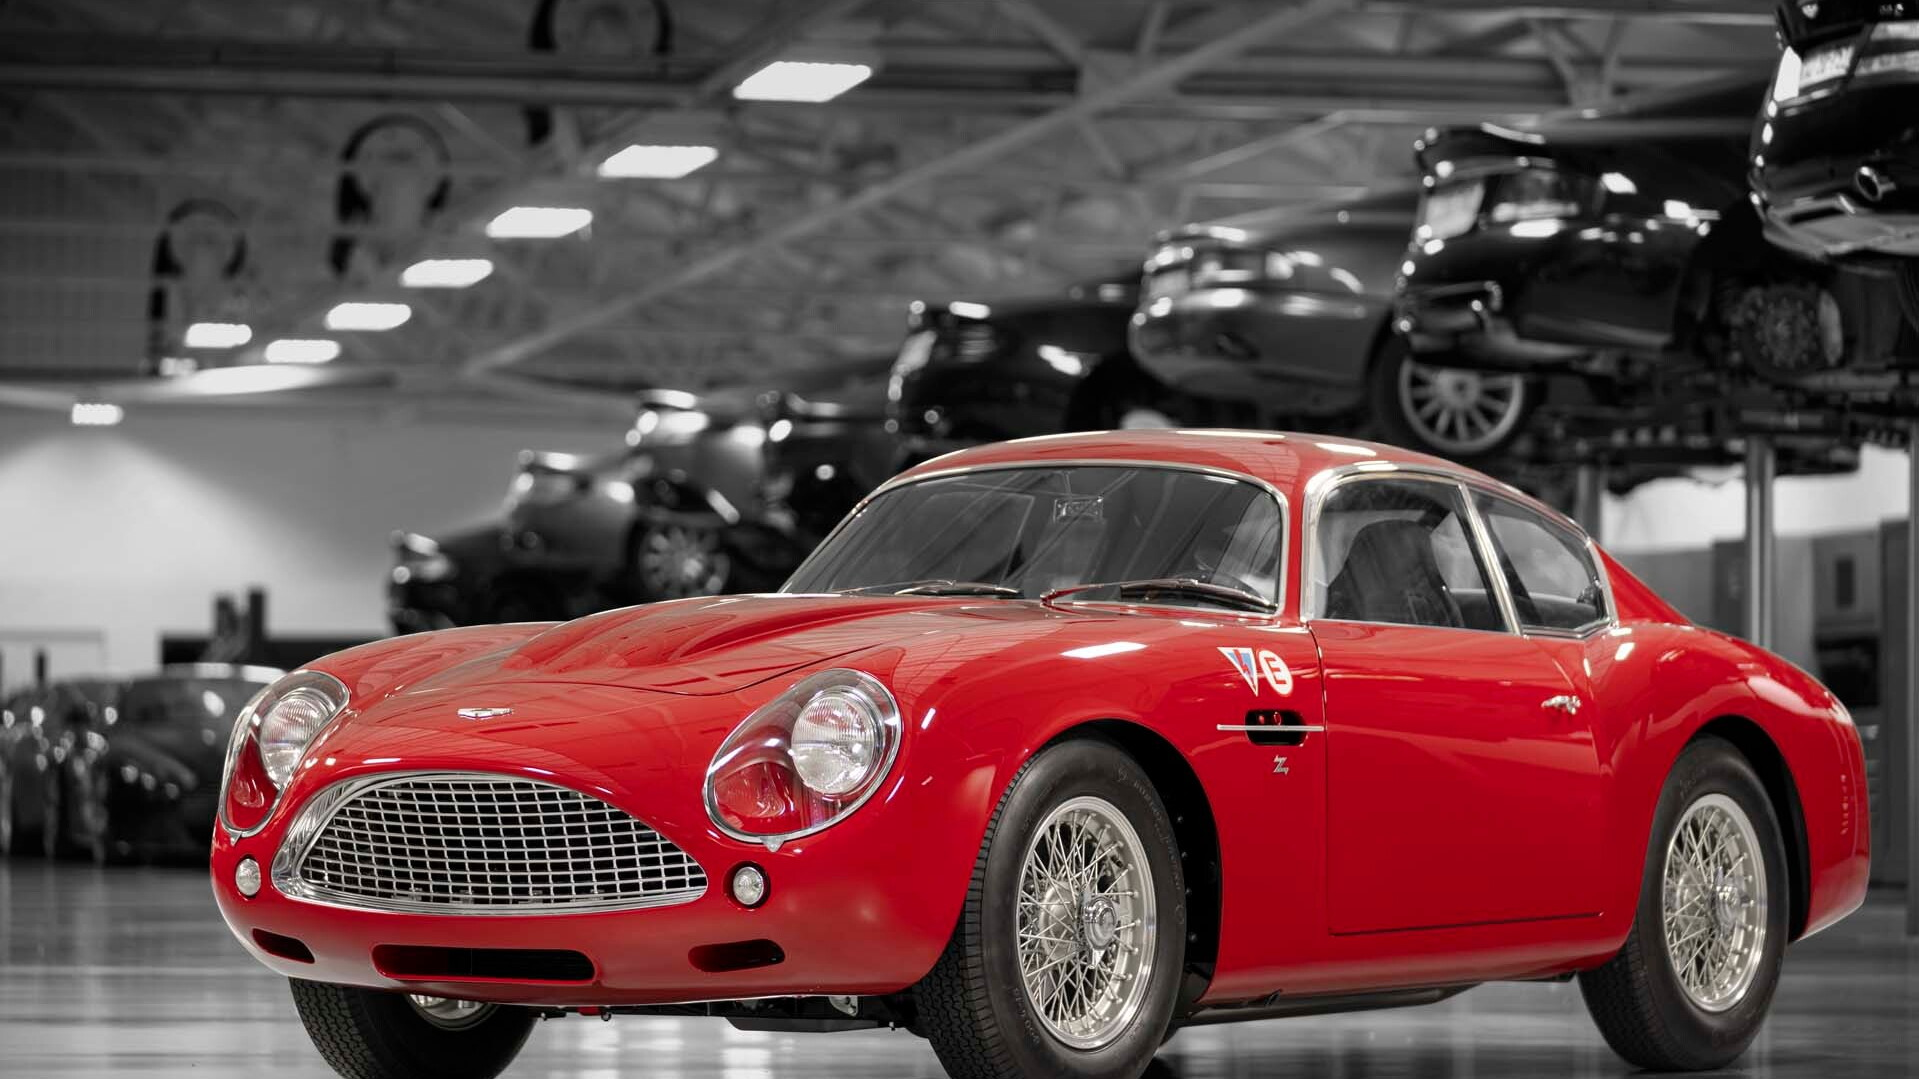 2019 Aston Martin DB4 GT Zagato continuation car